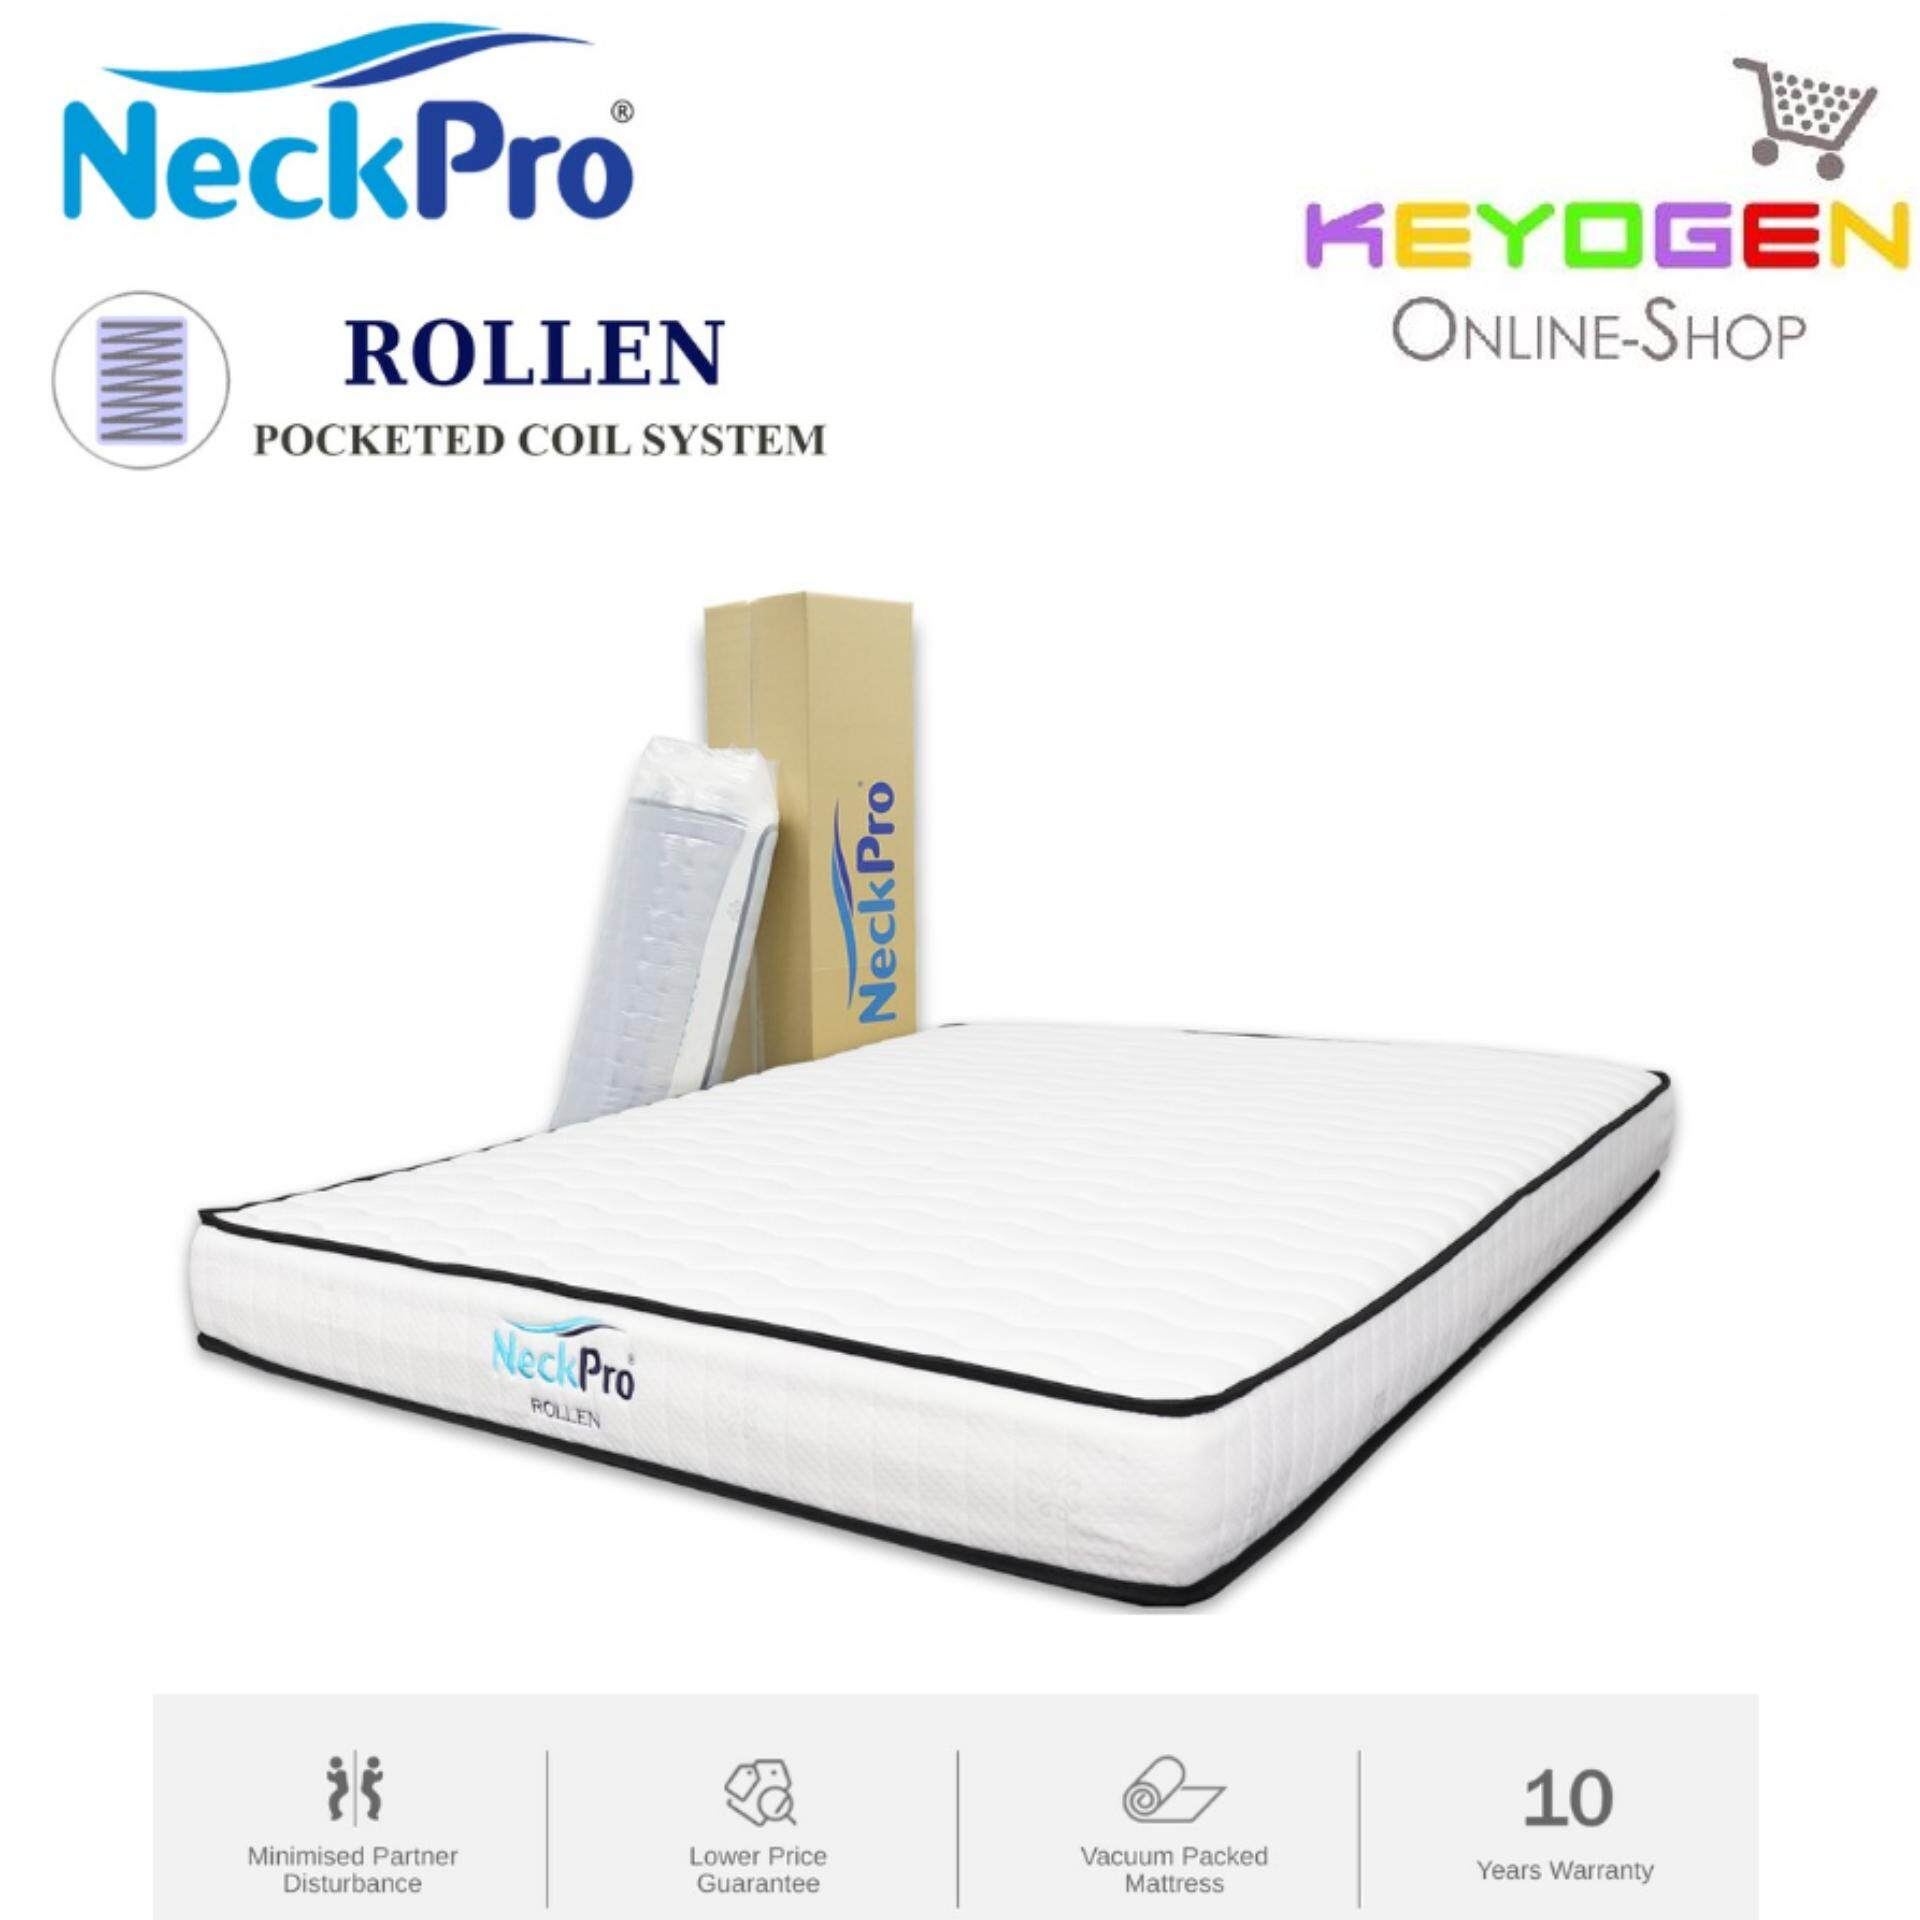 Rolled Single Mattress Neckpro Rollen Single Super Single Queen King Rolled Pocketed Spring Mattress 8 Inch Thickness